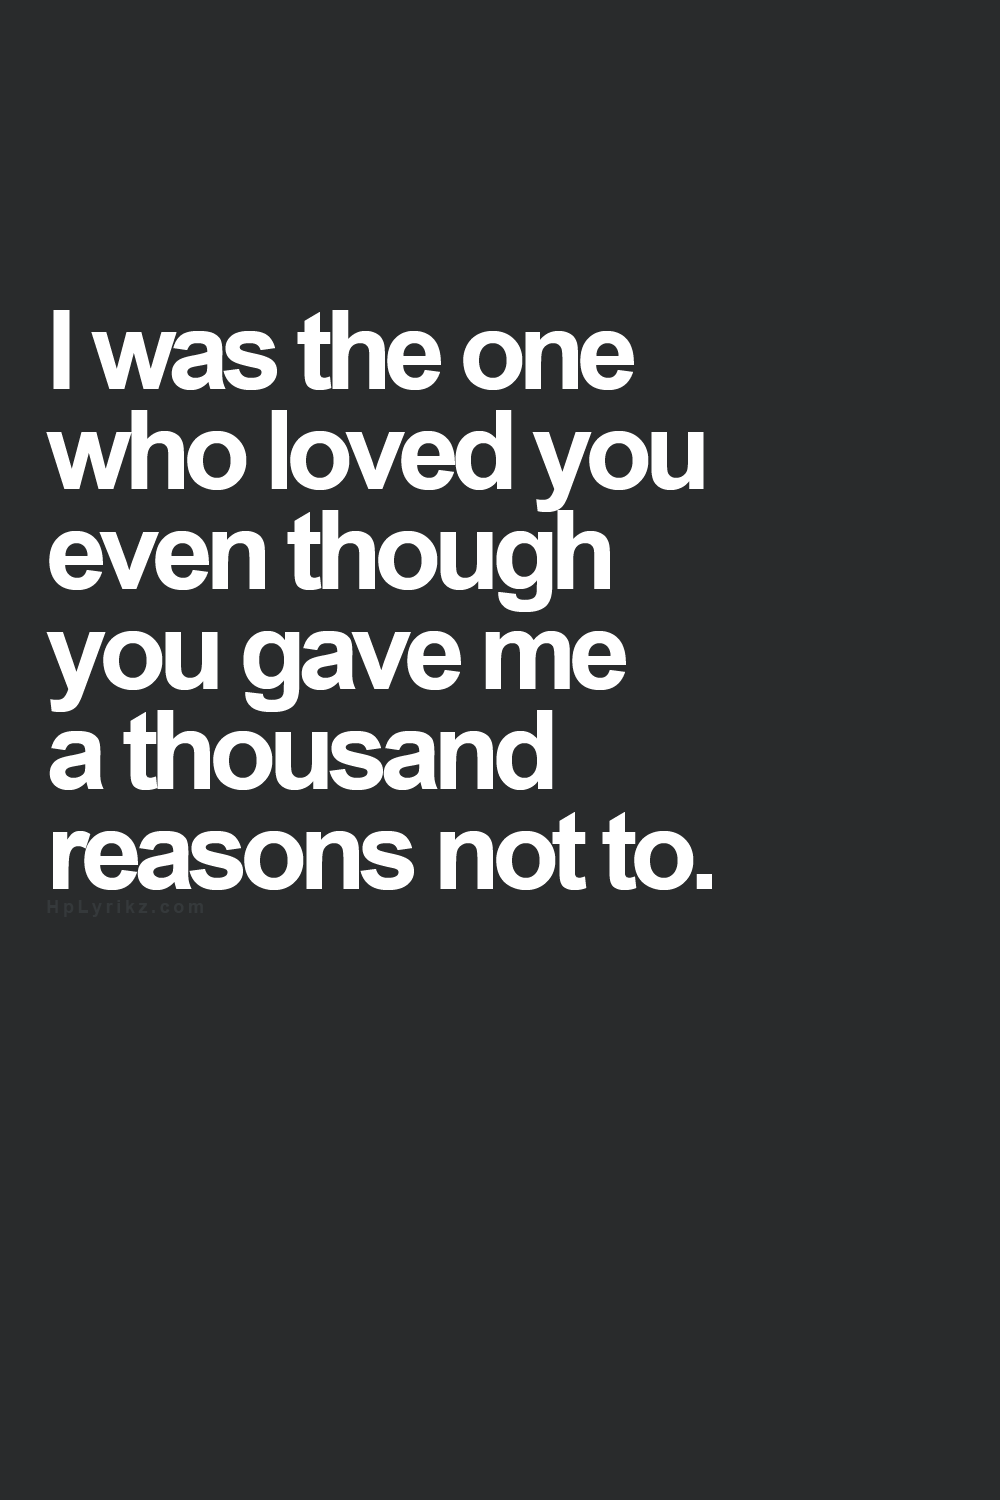 It s true everyone gave me a lot of reasons to not love u but I did